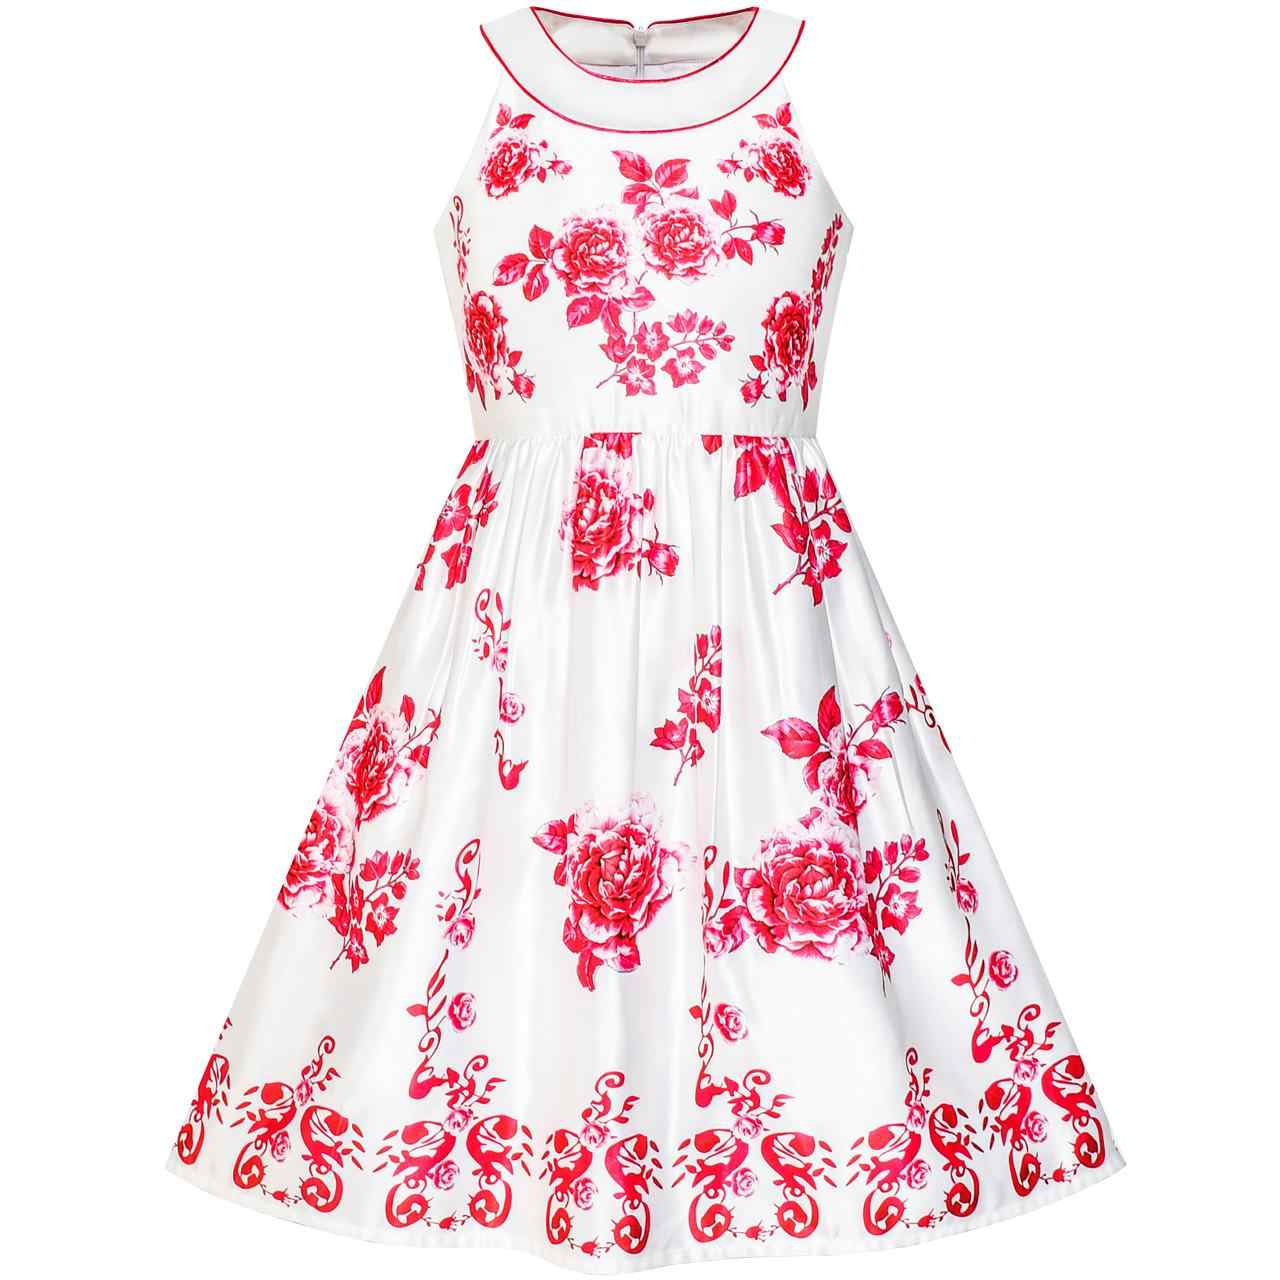 55a32bd0f Detail Feedback Questions about 2 in 1 Flower Girls Dress ...